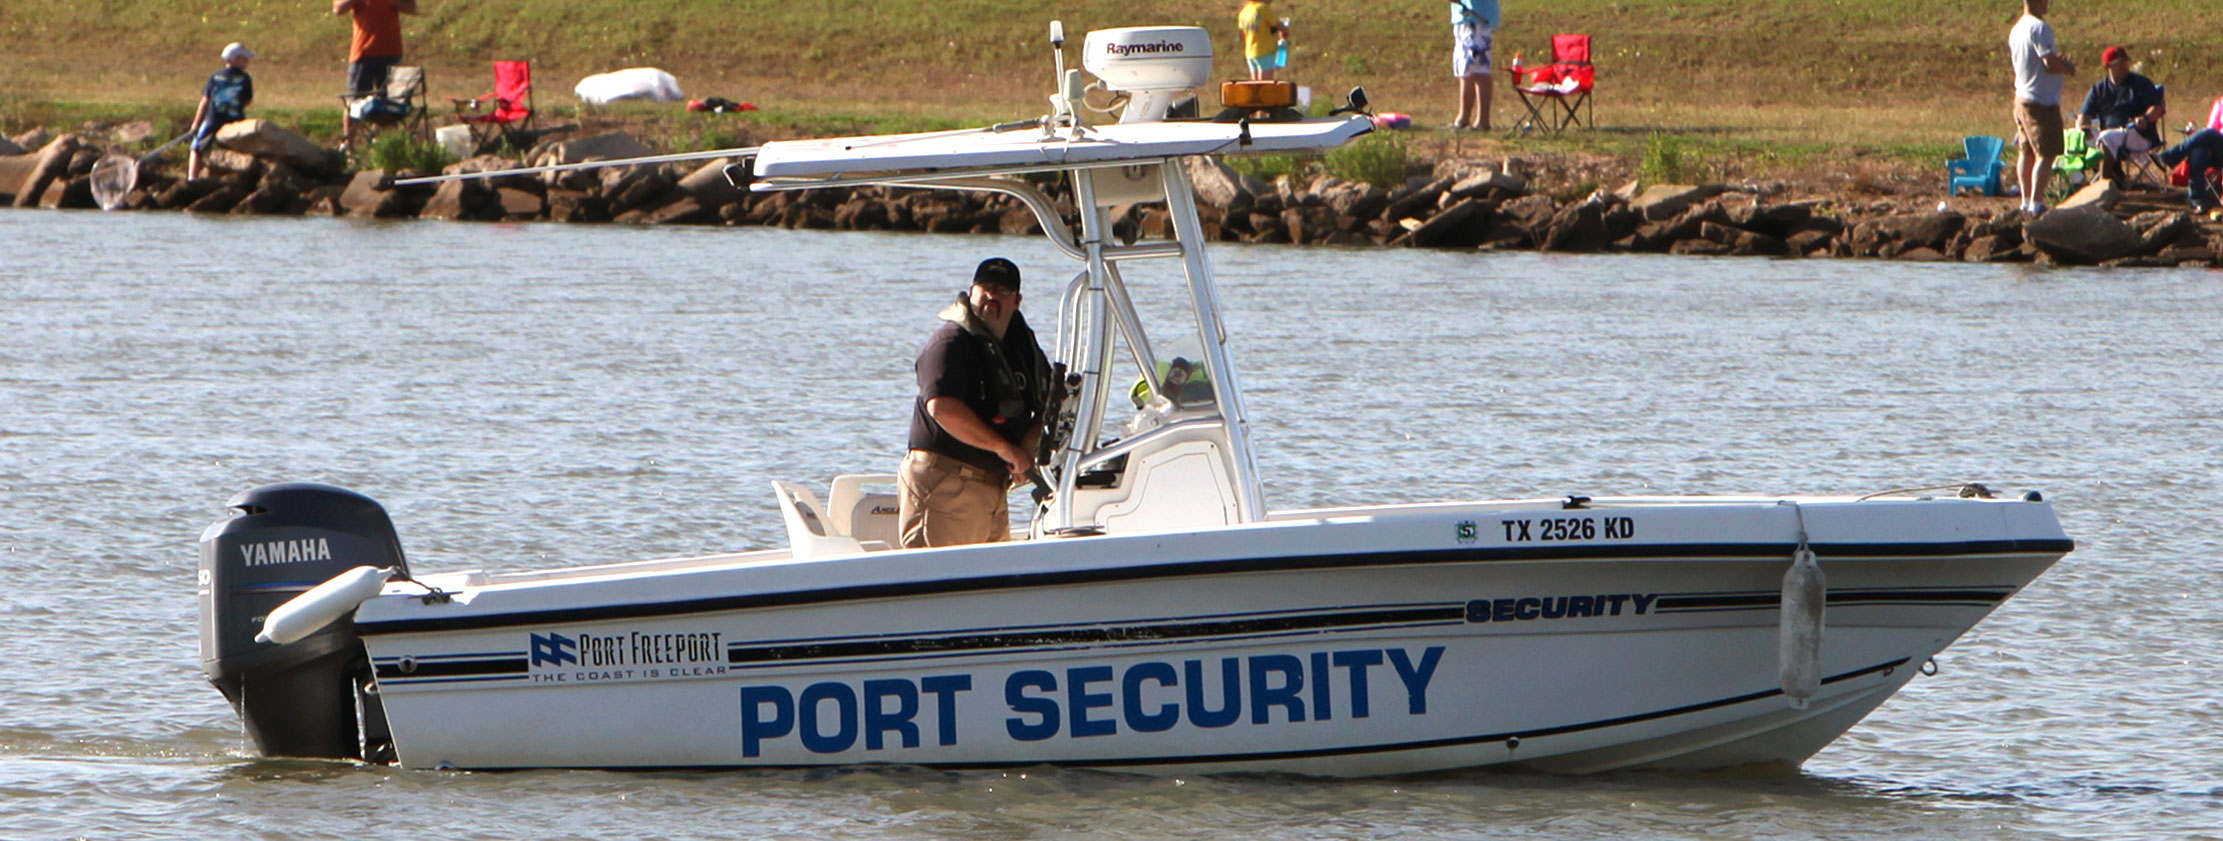 port security at port freeport tx